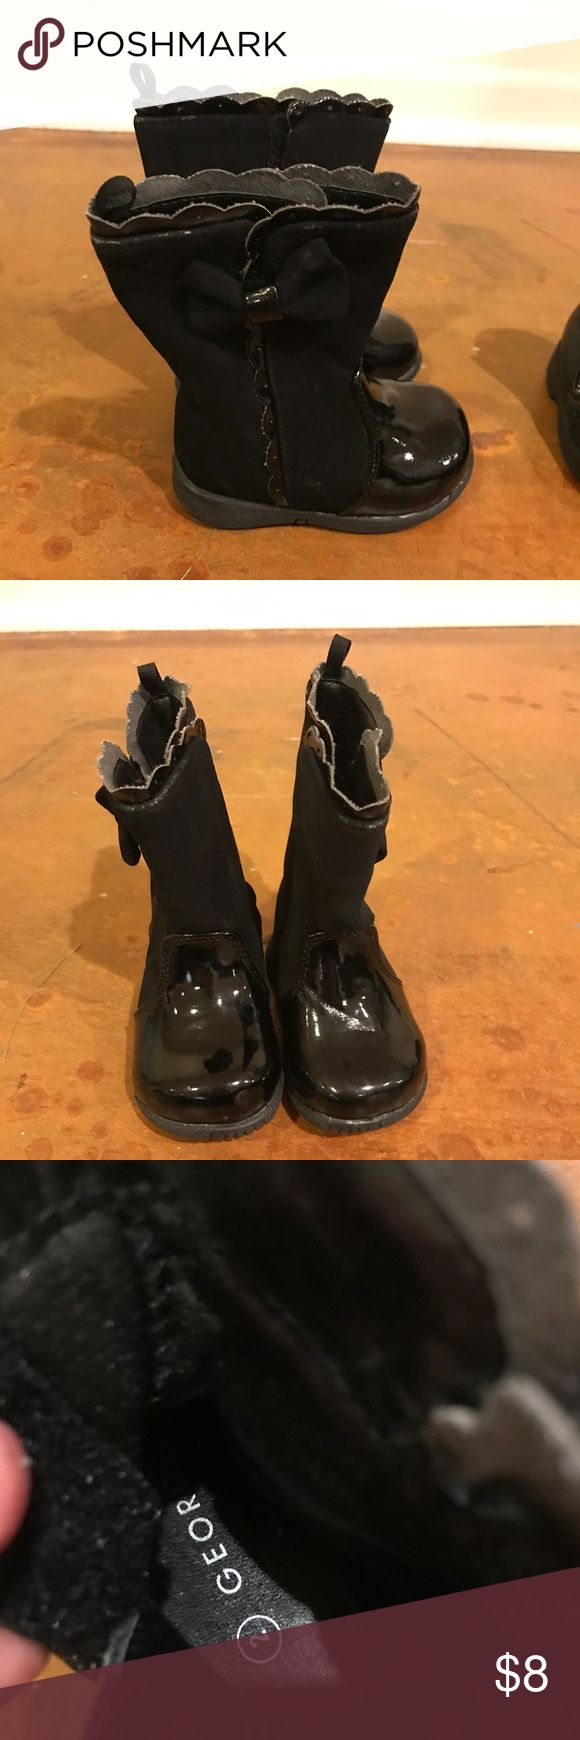 George Size 2 toddler girl black boots Black baby or toddler girls boots for sale! Size 2, in good preowned condition! Have Velcro on the sides and a cute bow on top! See my other baby and maternity items for sale, and bundle for savings! George Shoes Boots